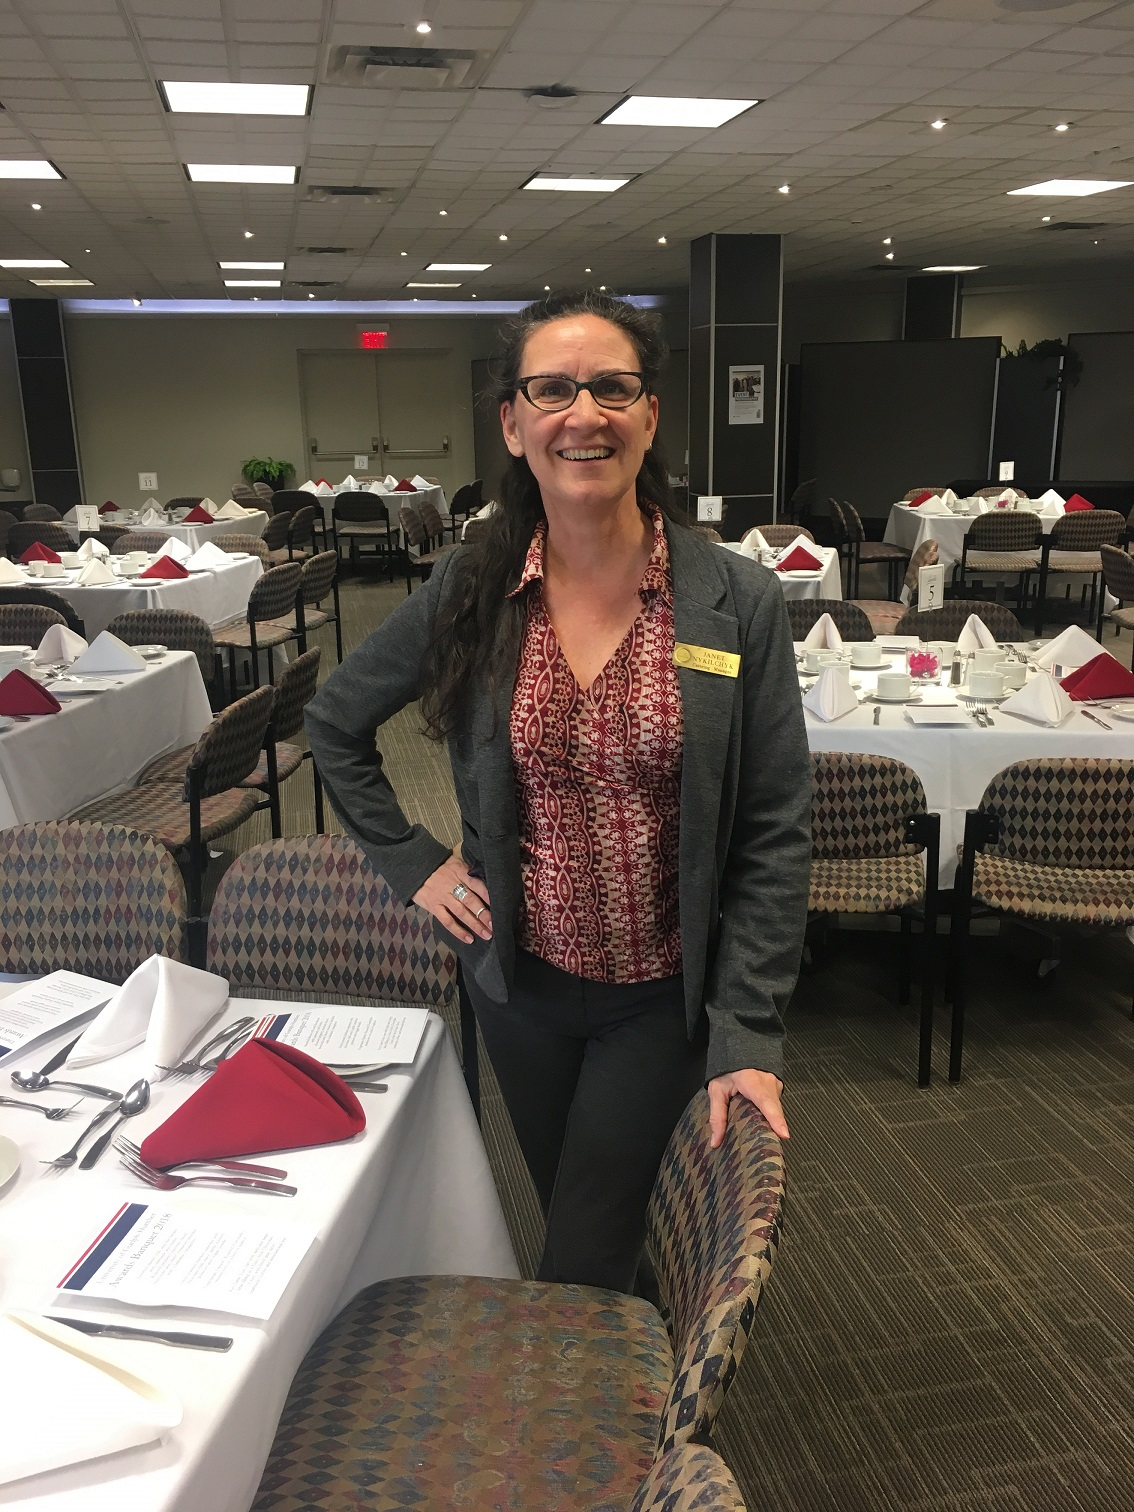 Janey Nykilchyk - Catering Manager, Humber North Campus